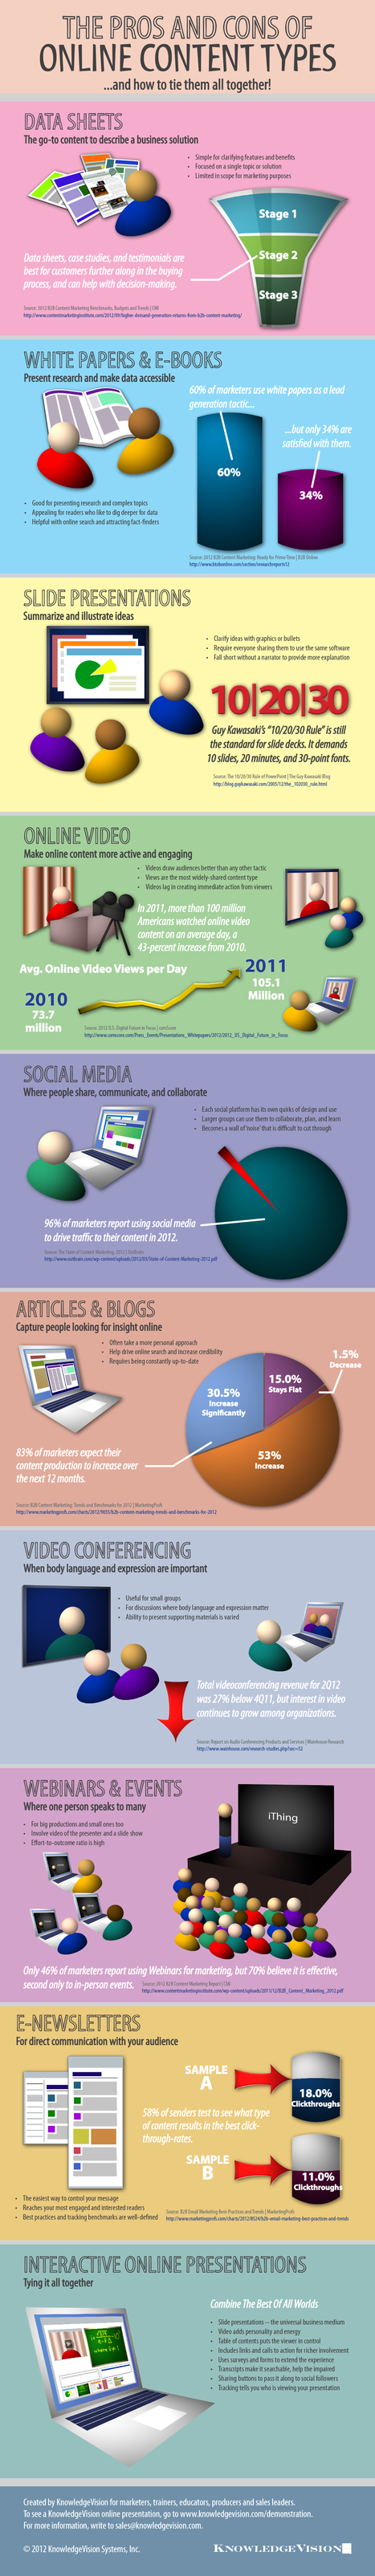 The Pros and Cons Of Online Content Types | Custom Content Council Blog | digitalassetman | Scoop.it